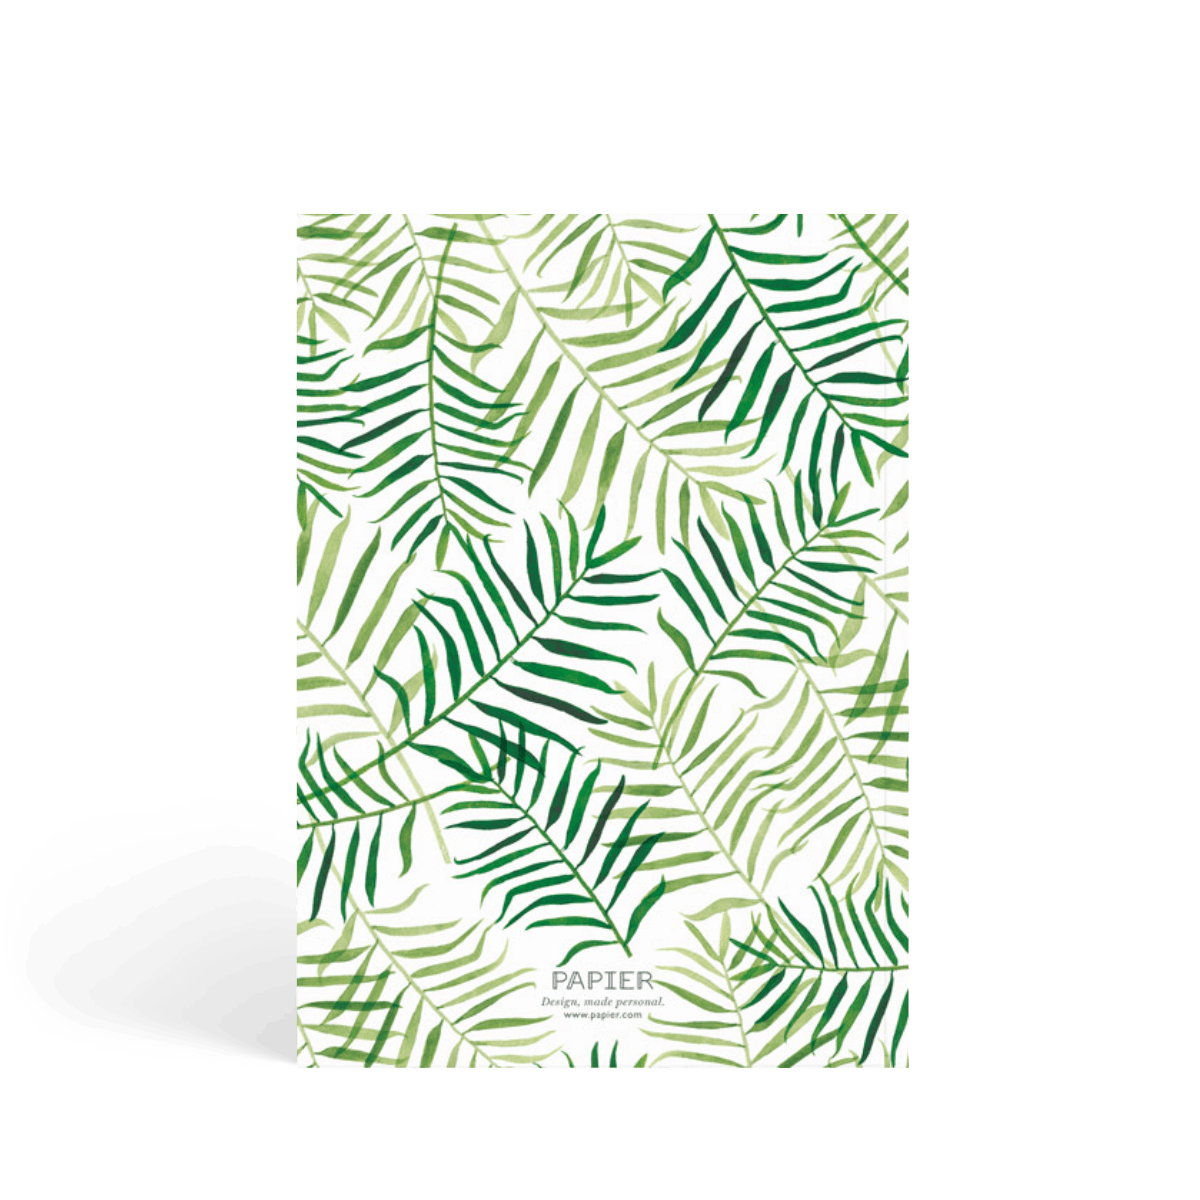 Https%3a%2f%2fwww.papier.com%2fproduct image%2f55149%2f5%2fpalm leaves 13251 back 1542299191.png?ixlib=rb 1.1